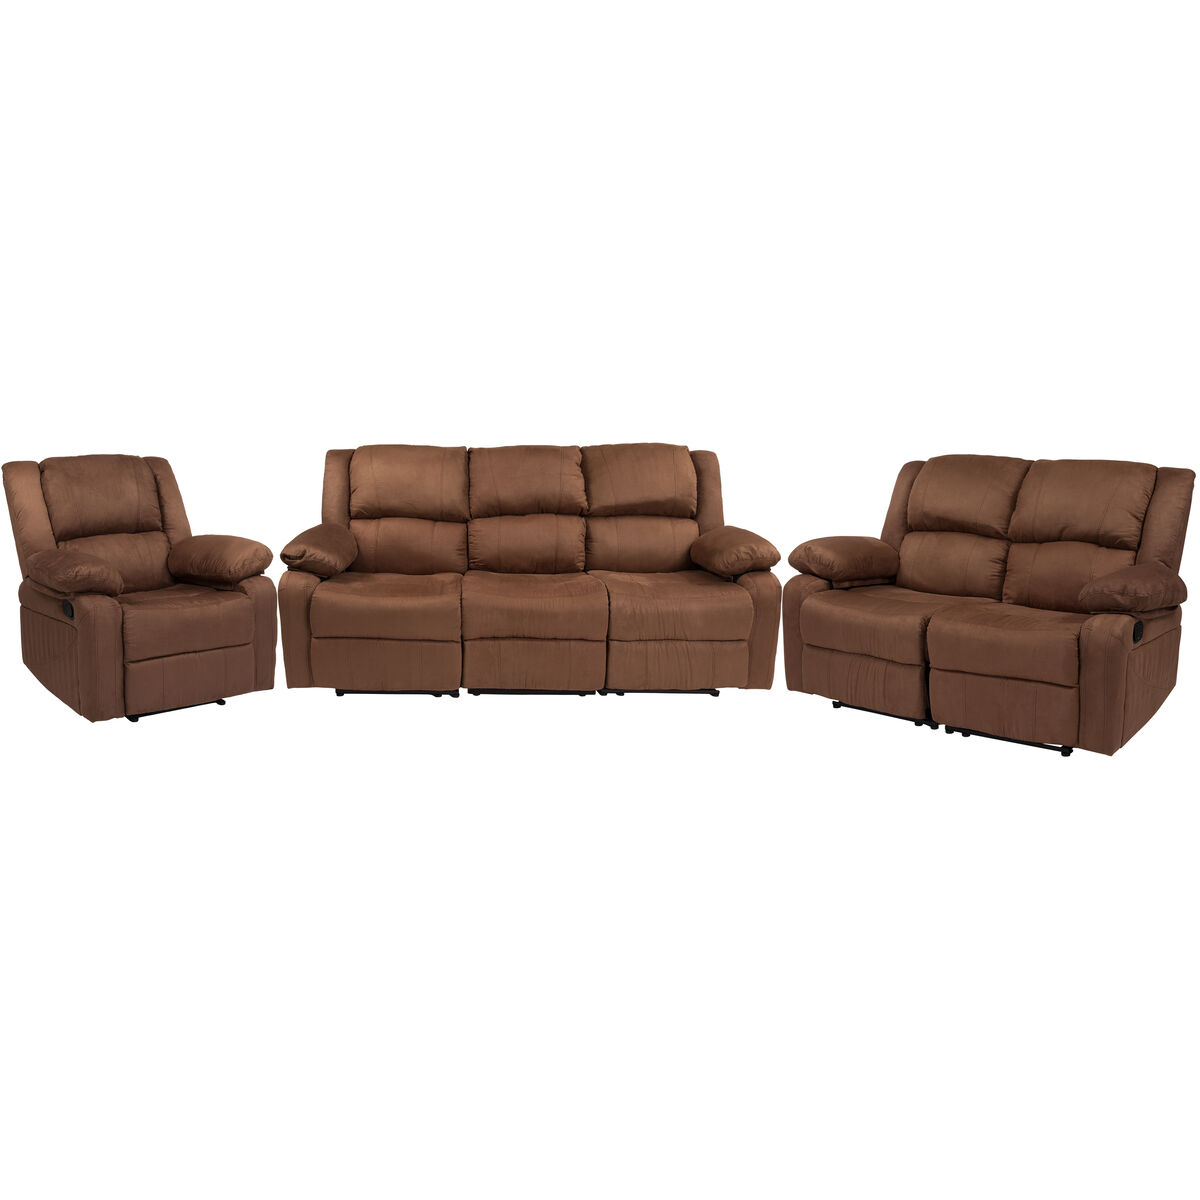 Our Harmony Series Chocolate Brown Microfiber Reclining Sofa Set Is On Now